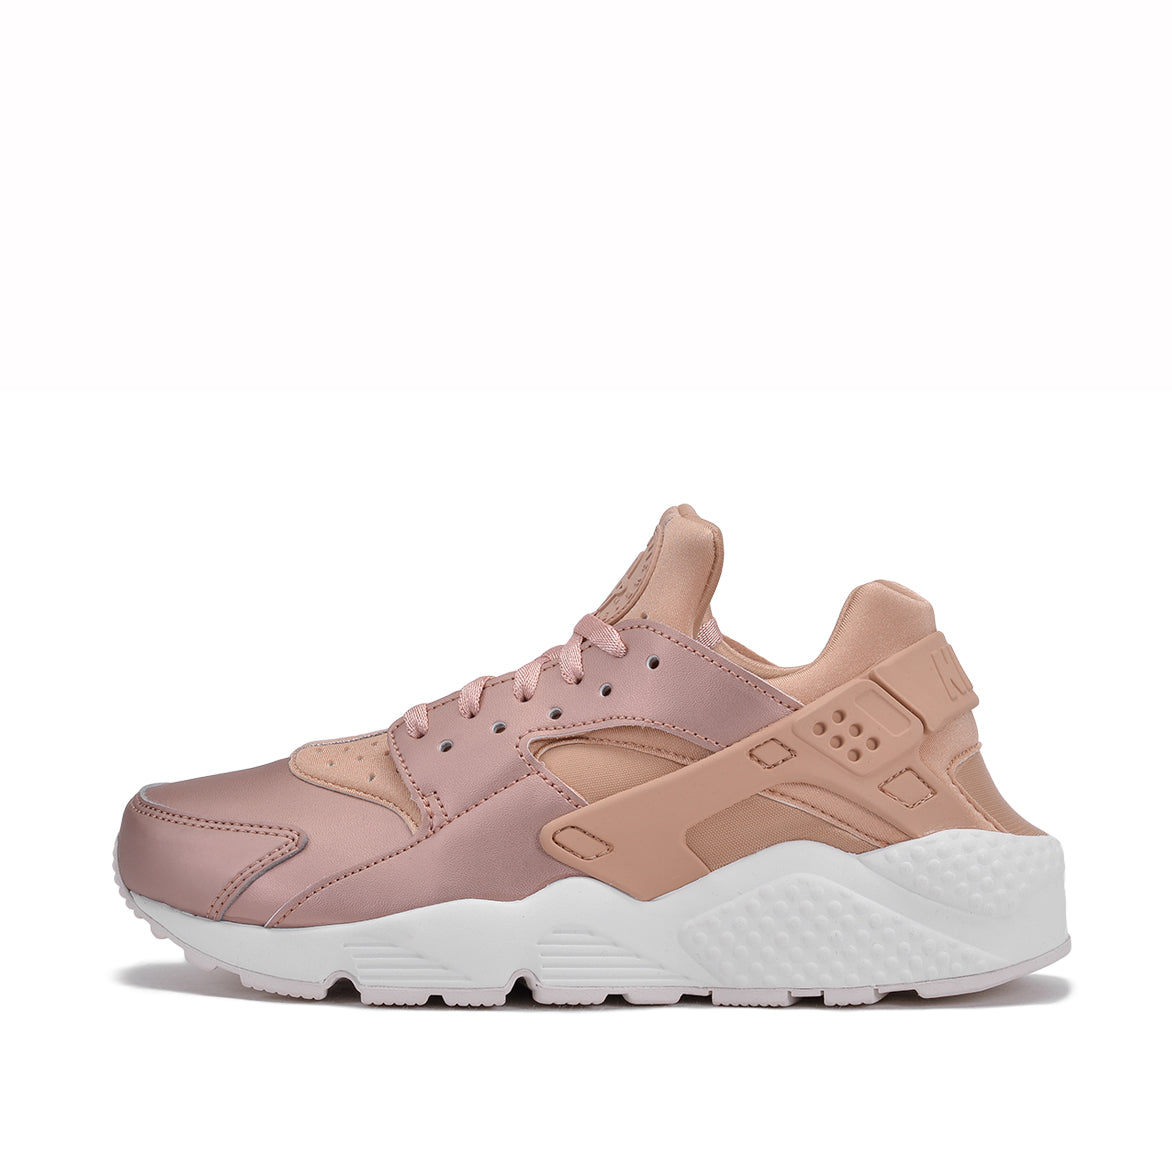 edf1653a8521 WMNS AIR HUARACHE RUN PRM TXT - METALLIC RED BRONZE. NIKE